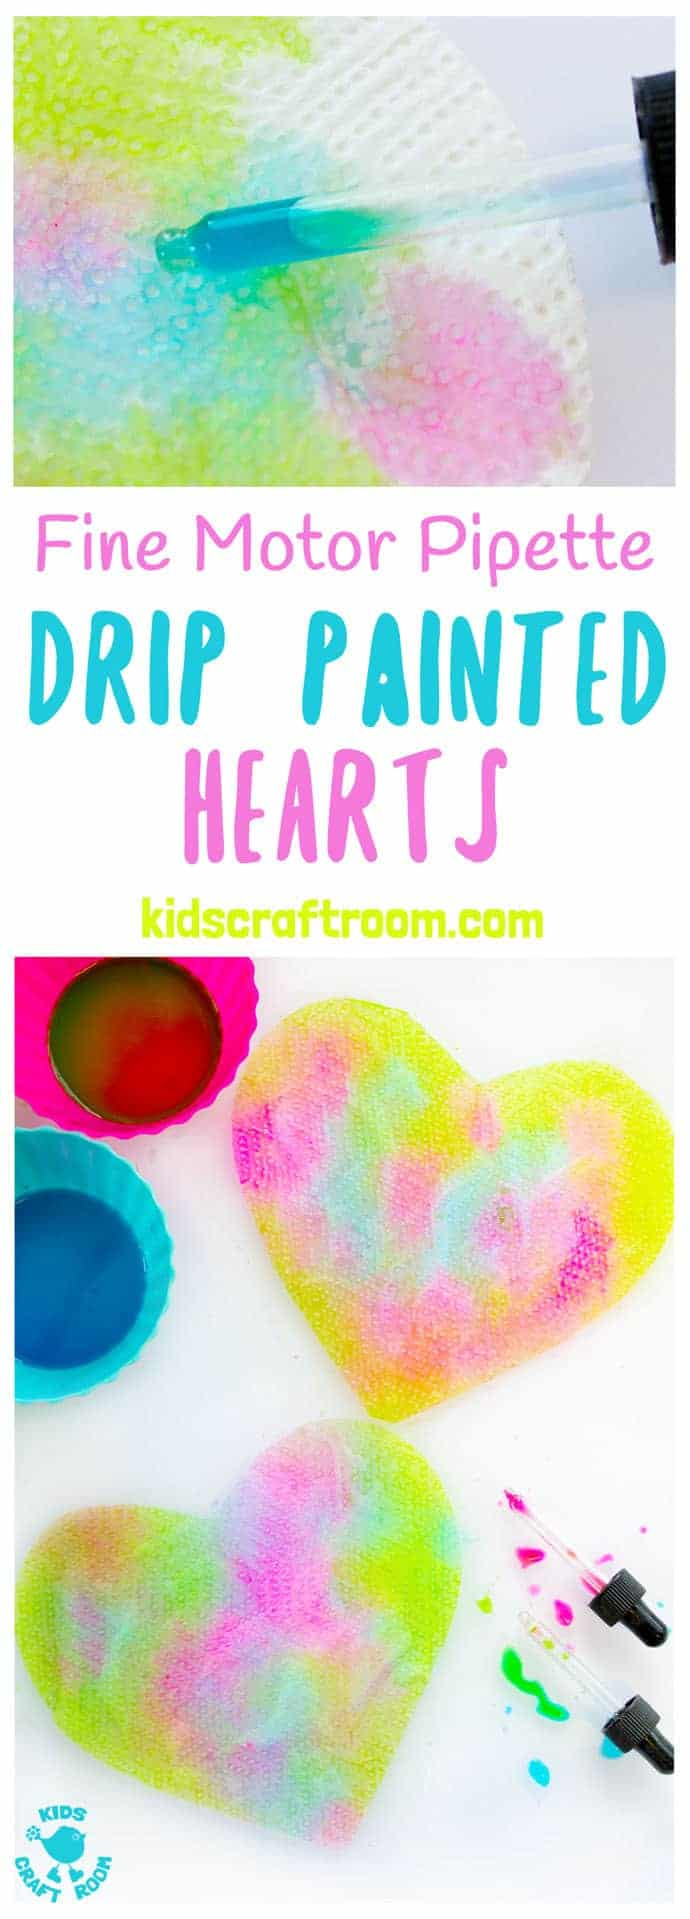 PIPETTE DRIP PAINTING HEARTS is a fun open ended process art for kids that develops fine motor skills, and explores colour mixing and pattern making. #painting #paintingideas #kidspainting #paintingforkids #motorskills #valentine #valentinesday #valentinesdaycraft #valentinecraft #valentinescrafts #valentinecrafts #valentinesdayforkids #heart #love #kidsart #processart #finemotorskills #kidsactivities #kidscrafts #kidscraftroom